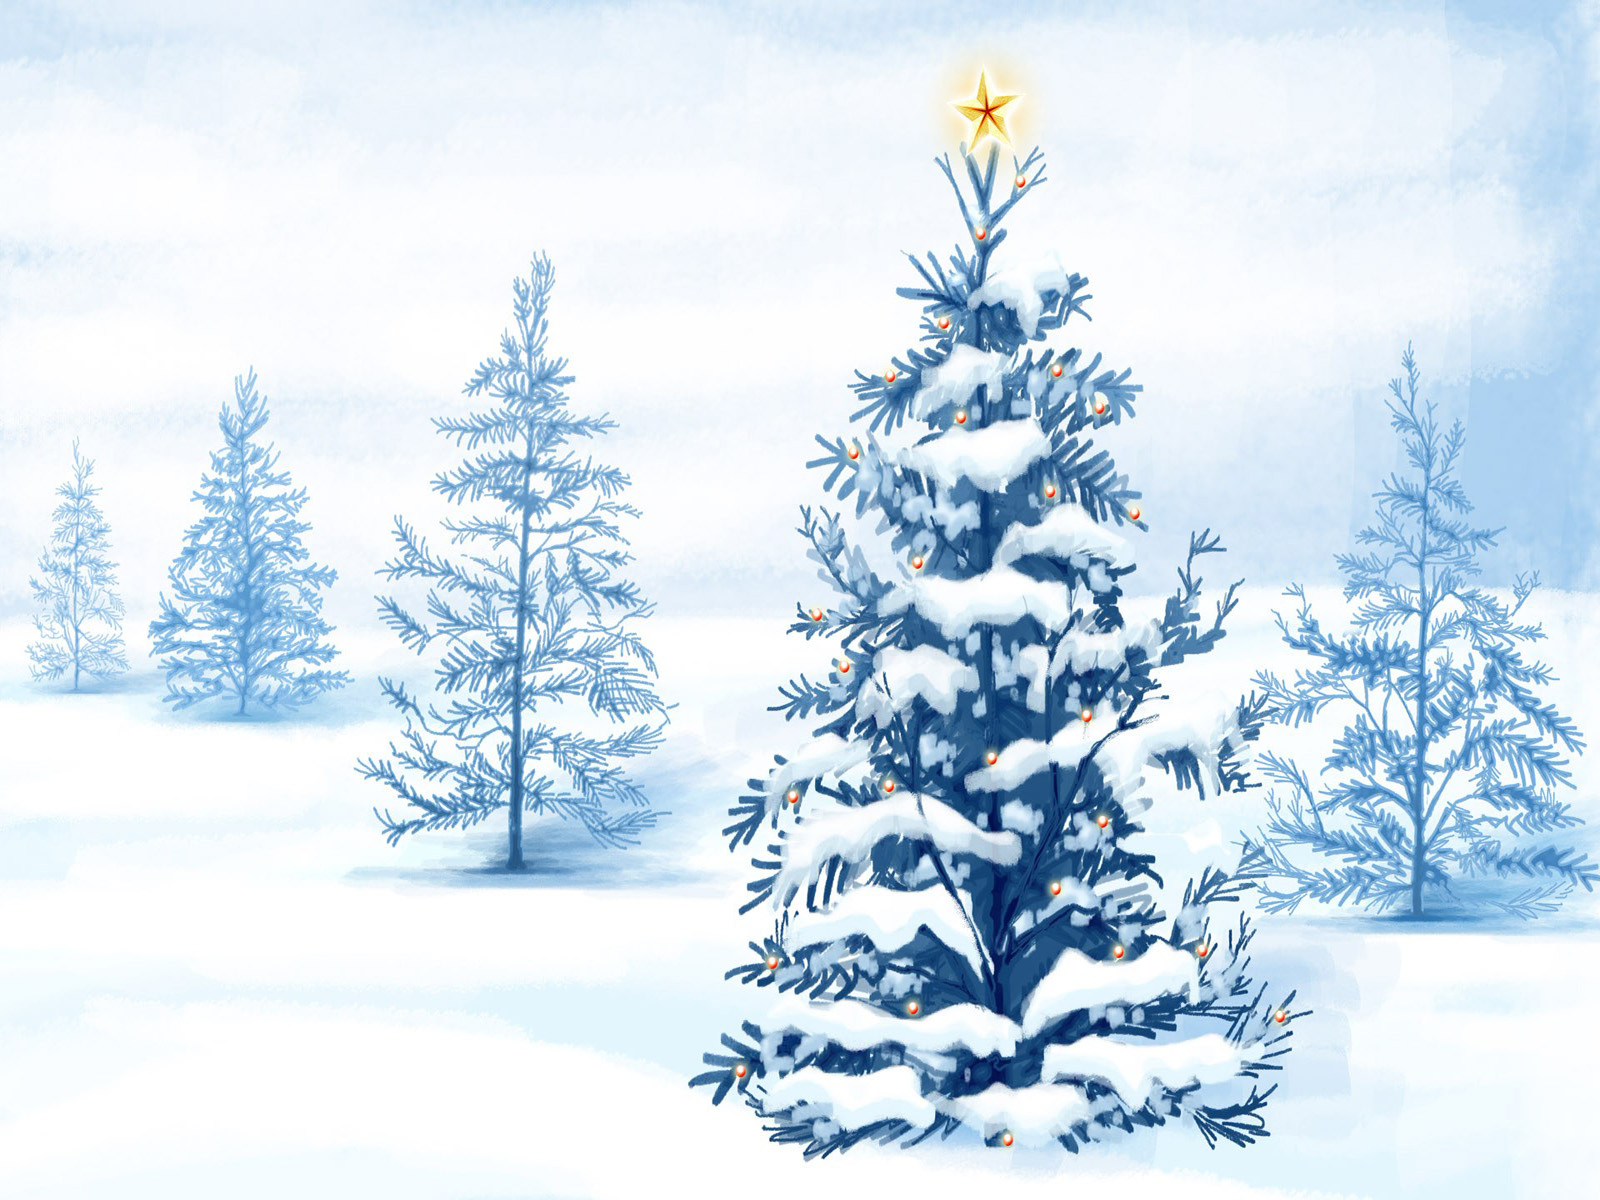 White Christmas Images Free.White Christmas Trees Wallpapers High Quality Download Free